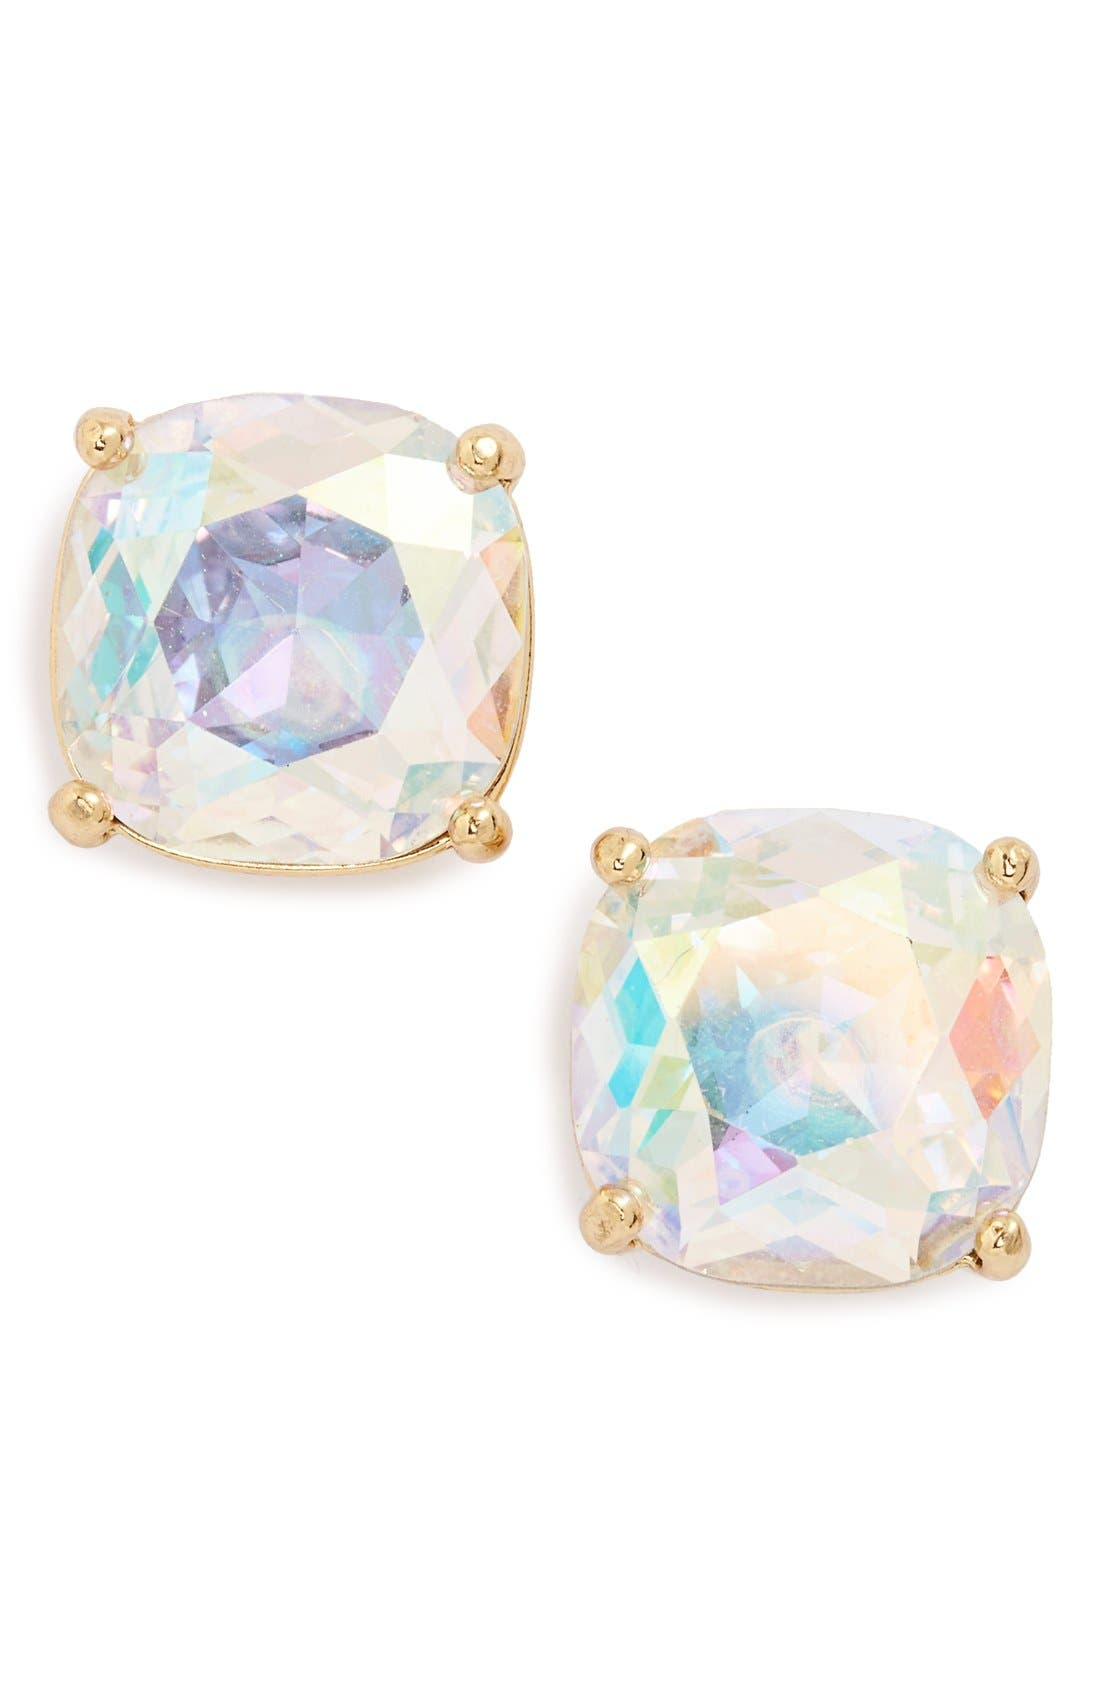 mini small square semiprecious stone stud earrings,                         Main,                         color, CRYSTAL AB/ SILVER